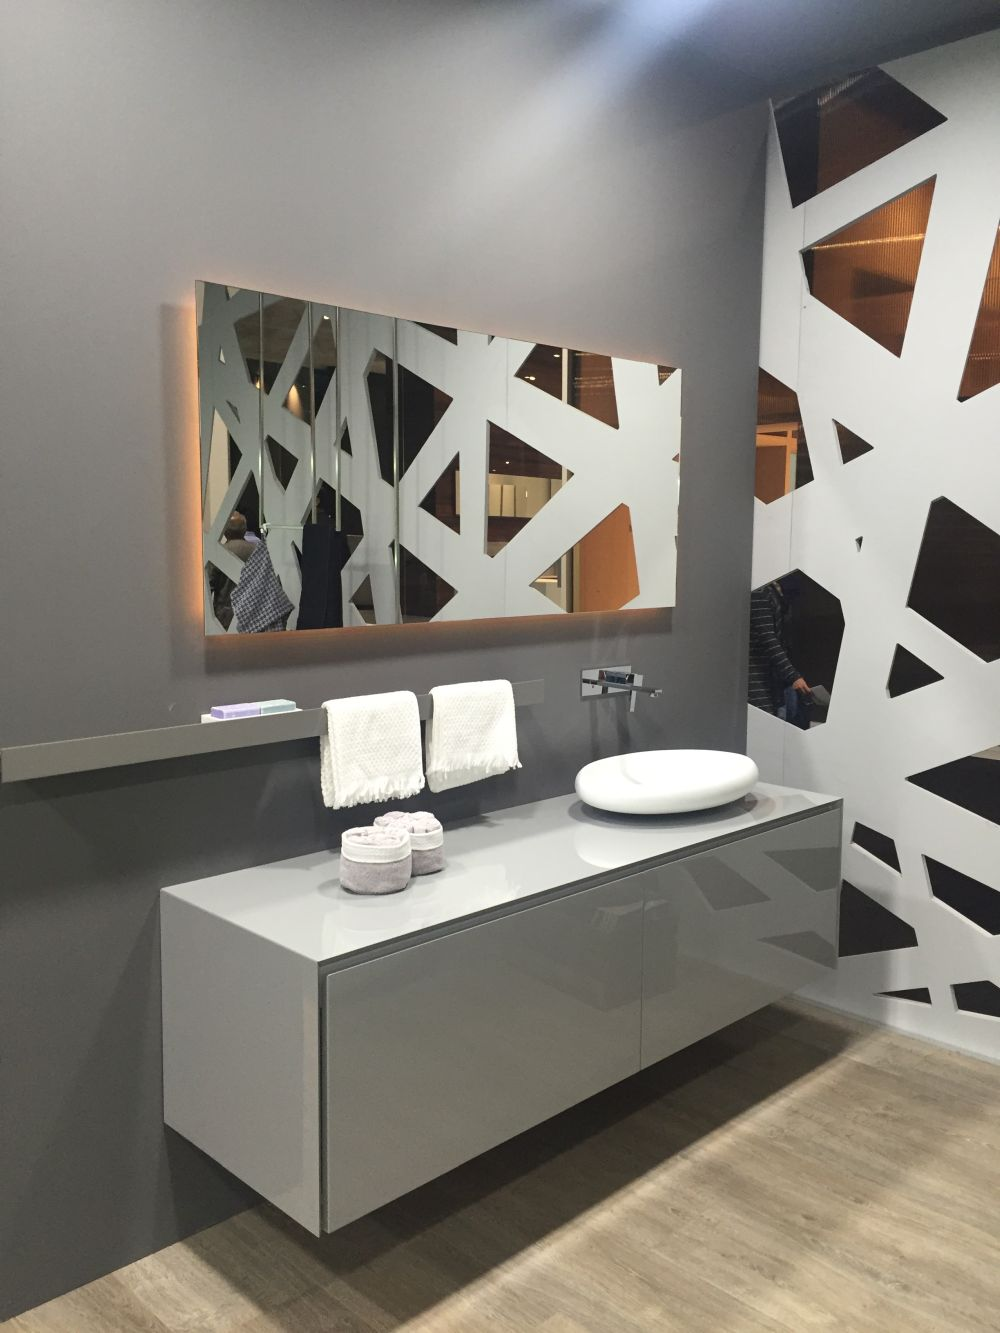 Use mirrors to add depth and glamour to the bathroom. You could use mirrors as cabinet fronts to save space